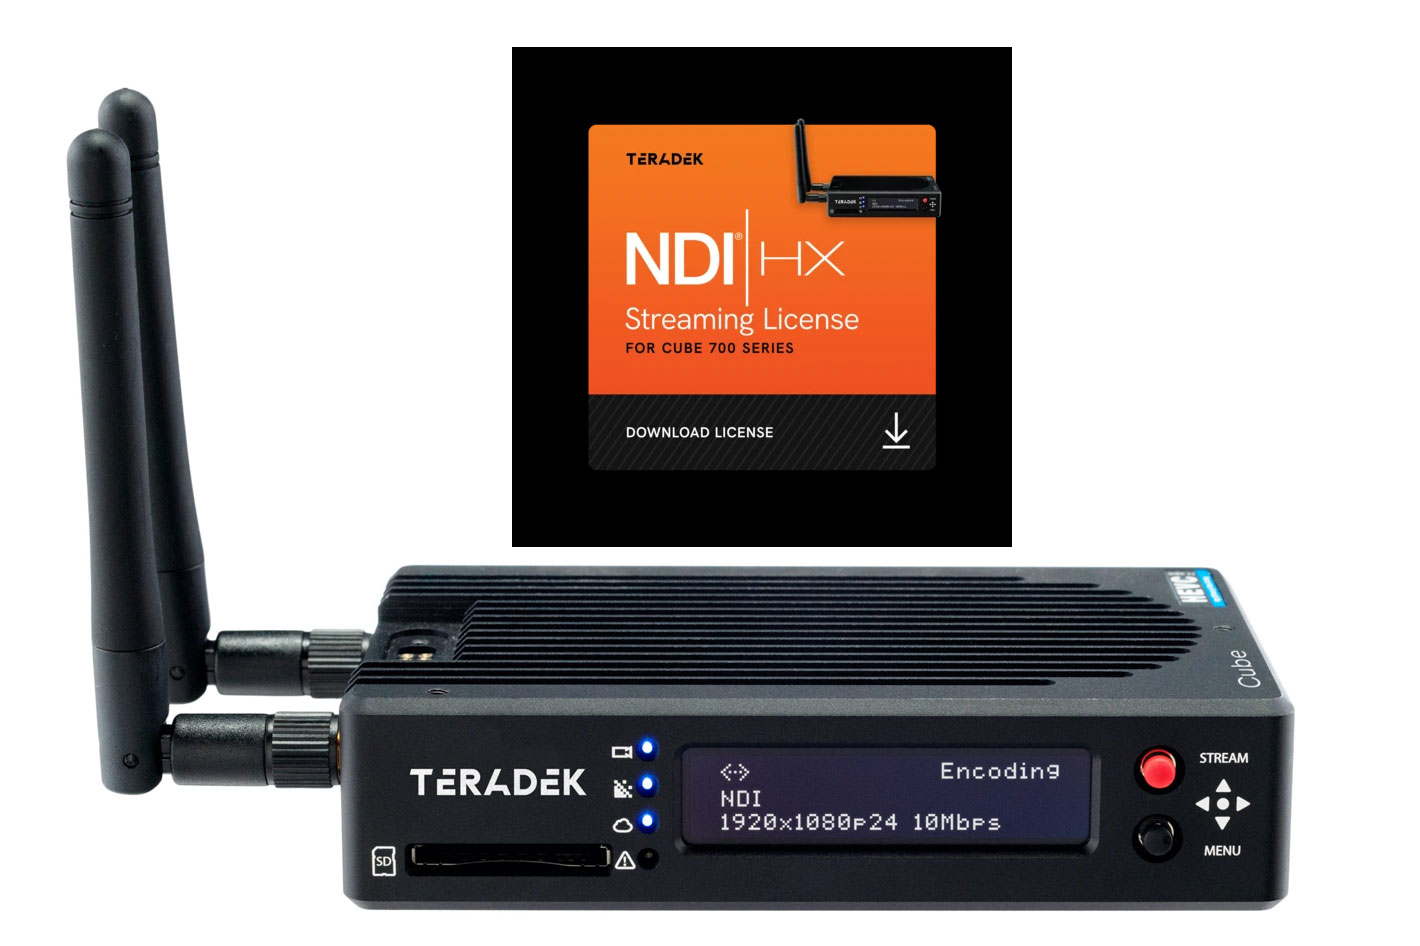 Teradek Cube 700 Series now offers NDI for video stream delivery